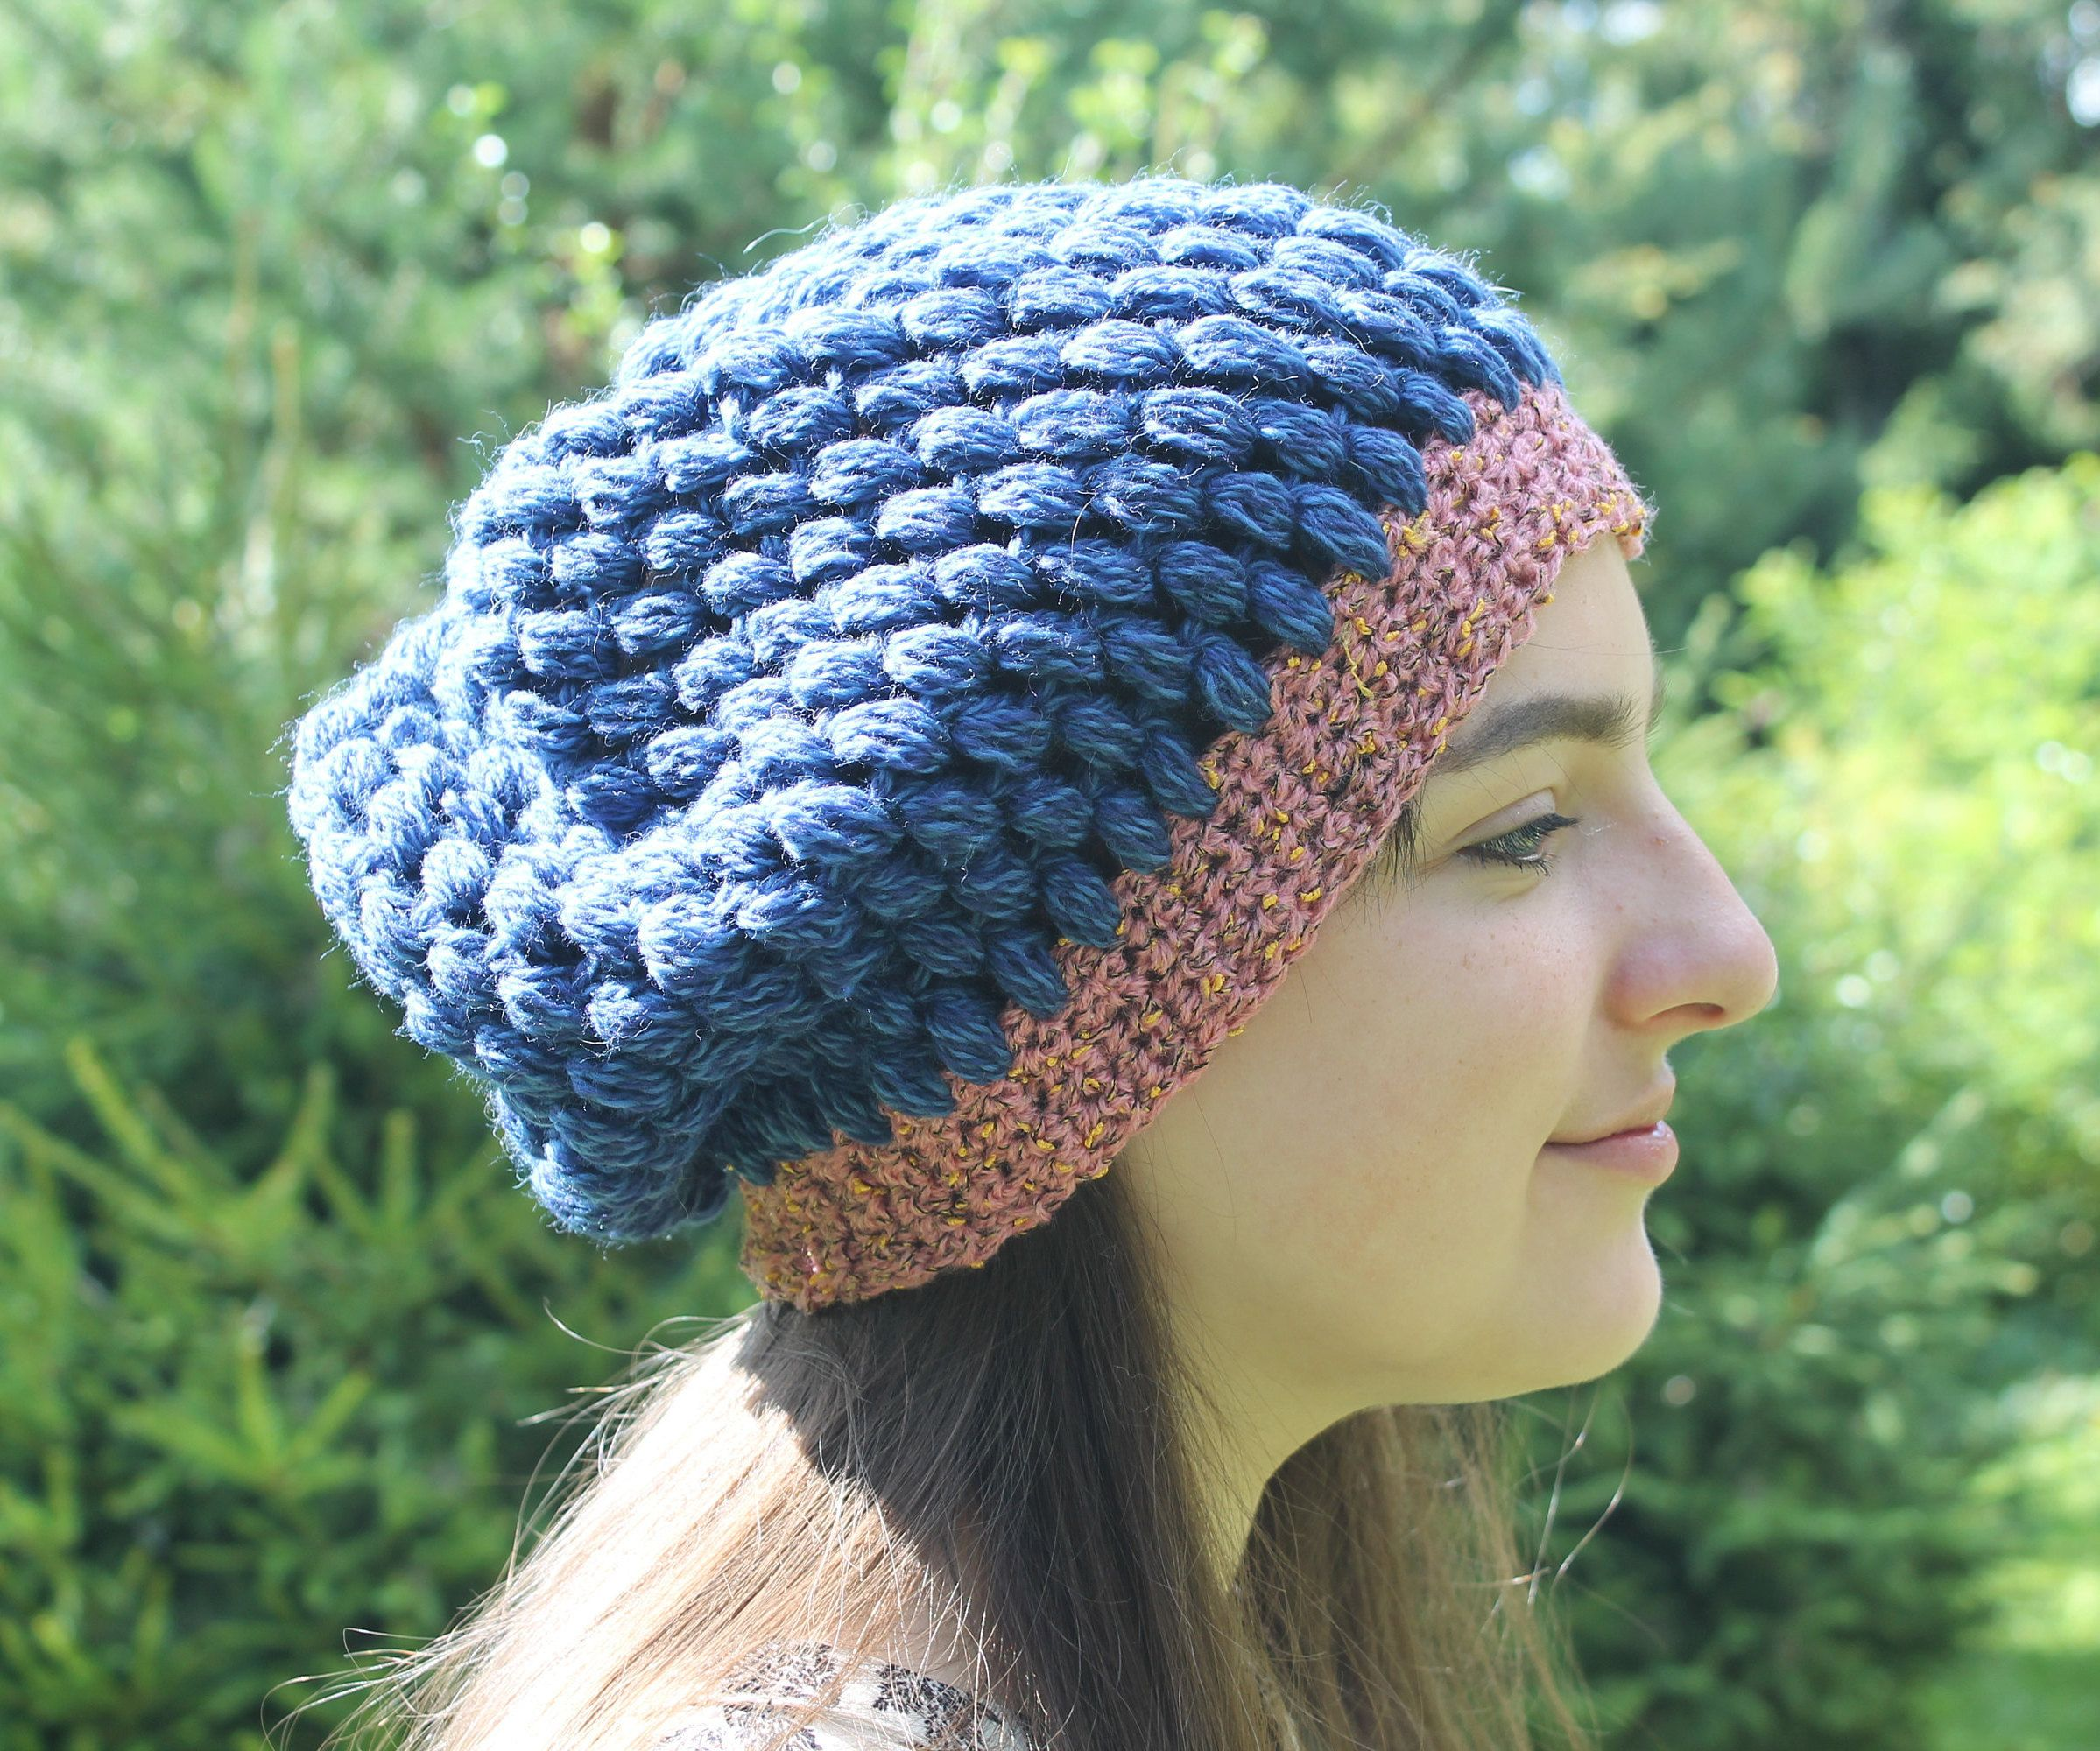 e71a49fd48e Hat crocheted beret blue slouch for women stylish oversized dusty pink  knitted made of merino wool